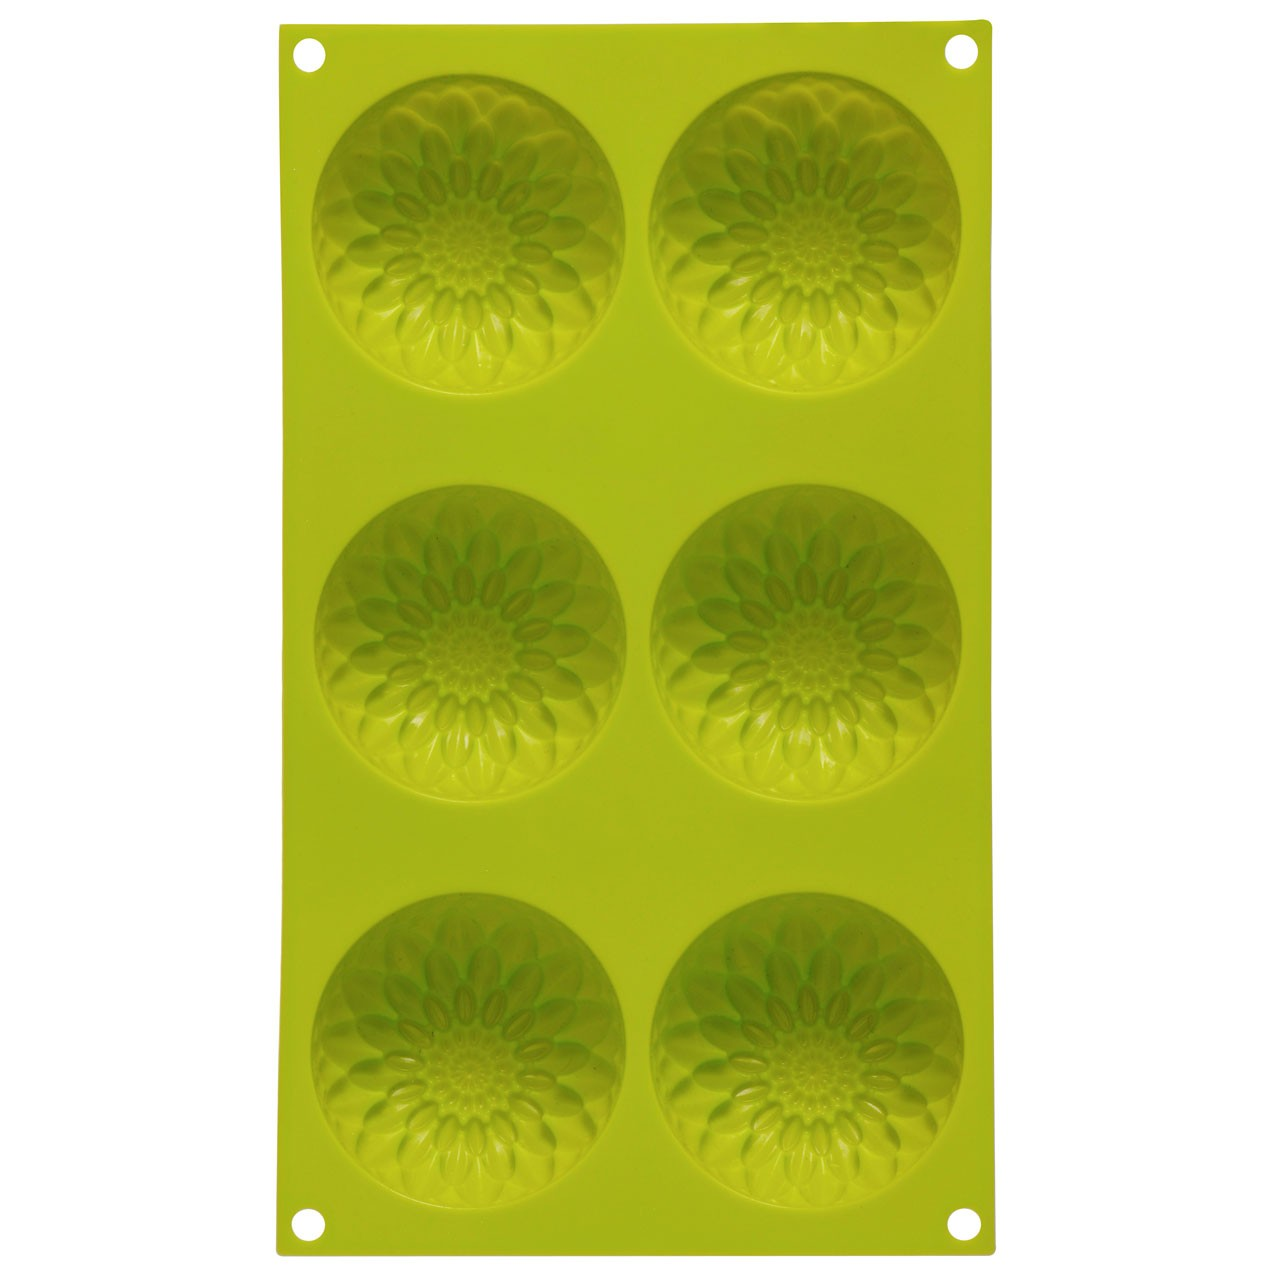 6 Sunflower Designs Cake Mould Lime Green Silicone